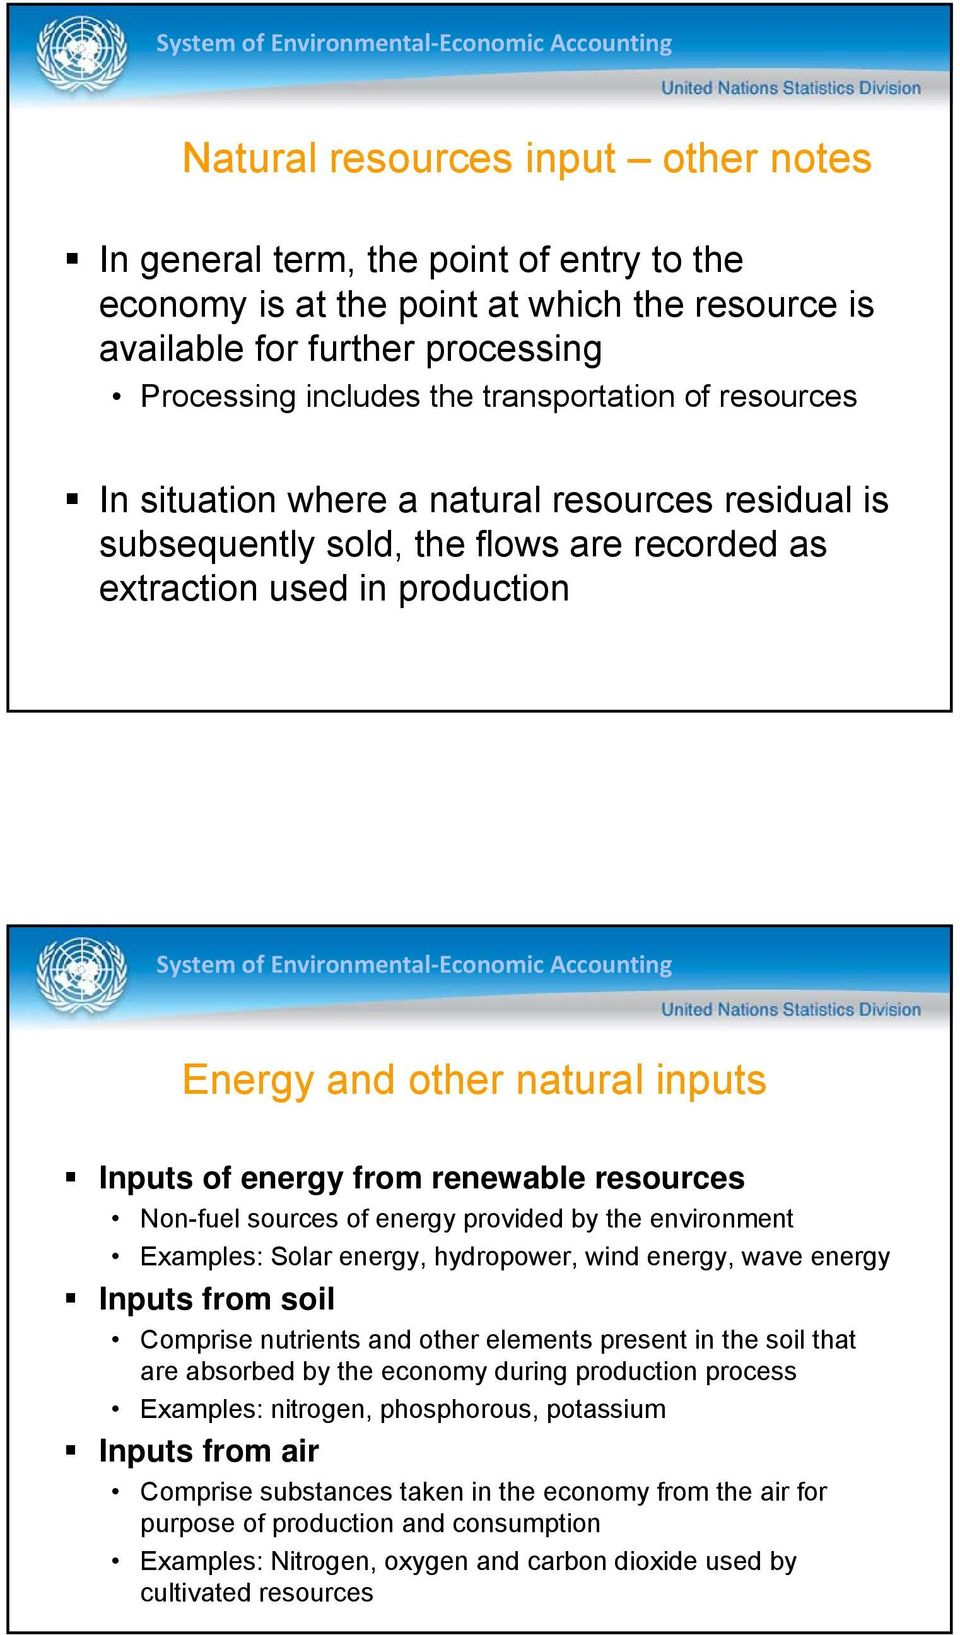 renewable resources Non-fuel sources of energy provided by the Examples: Solar energy, hydropower, wind energy, wave energy Inputs from soil Comprise nutrients and other elements present in the soil